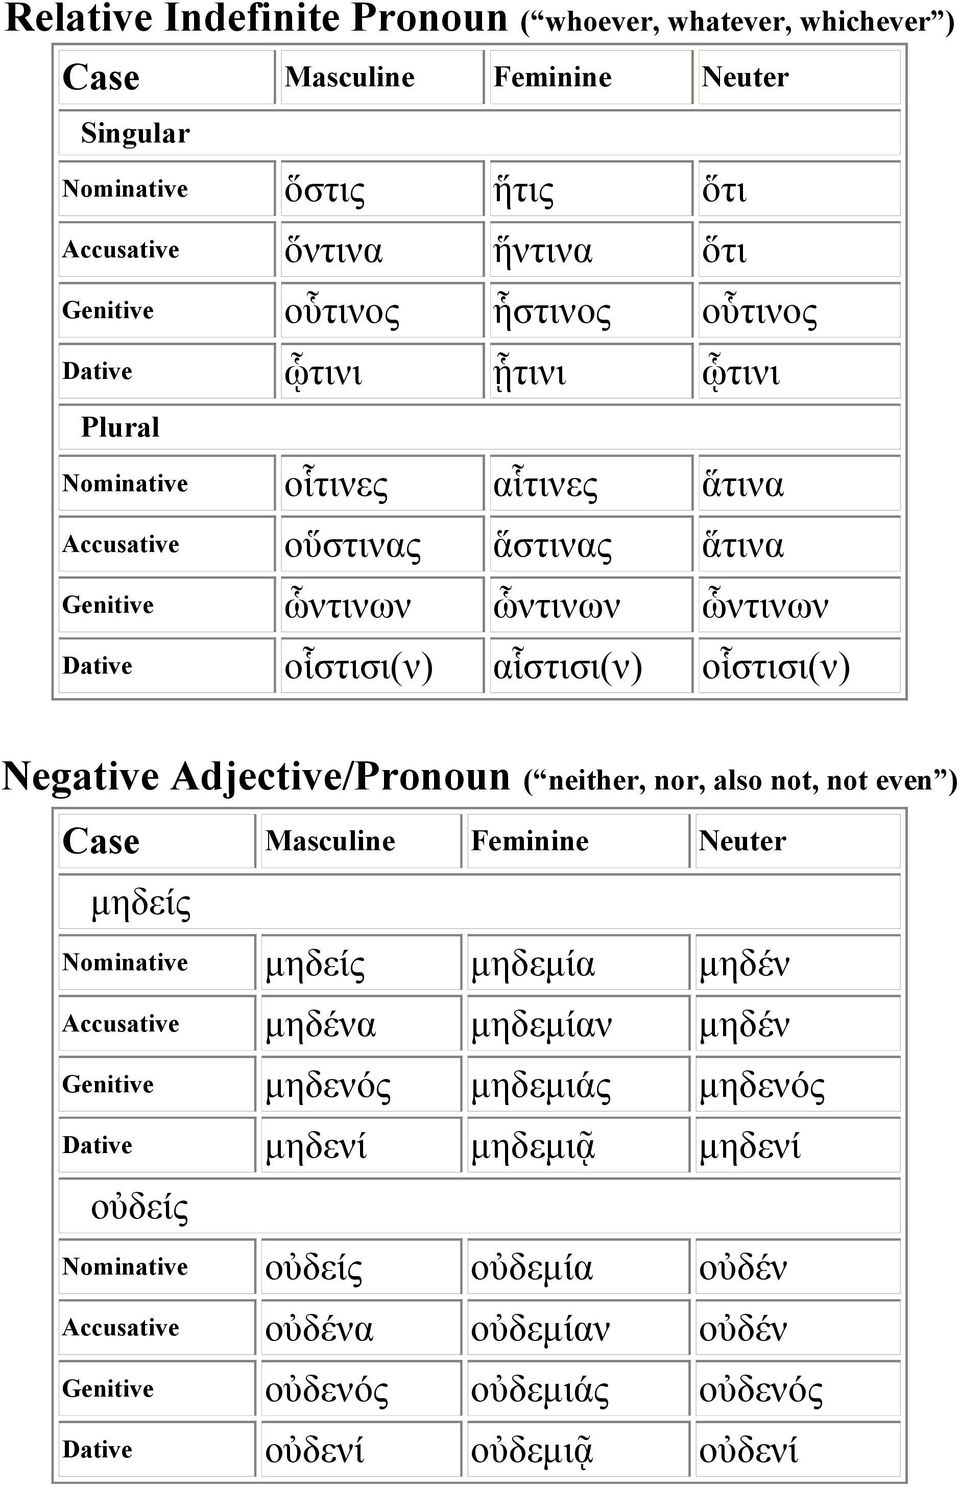 Adjective/Pronoun ( neither, nor, also not, not even ) μηδείς Nominative μηδείς μηδεμία μηδέν Accusative μηδένα μηδεμίαν μηδέν Genitive μηδενός μηδεμιάς μηδενός